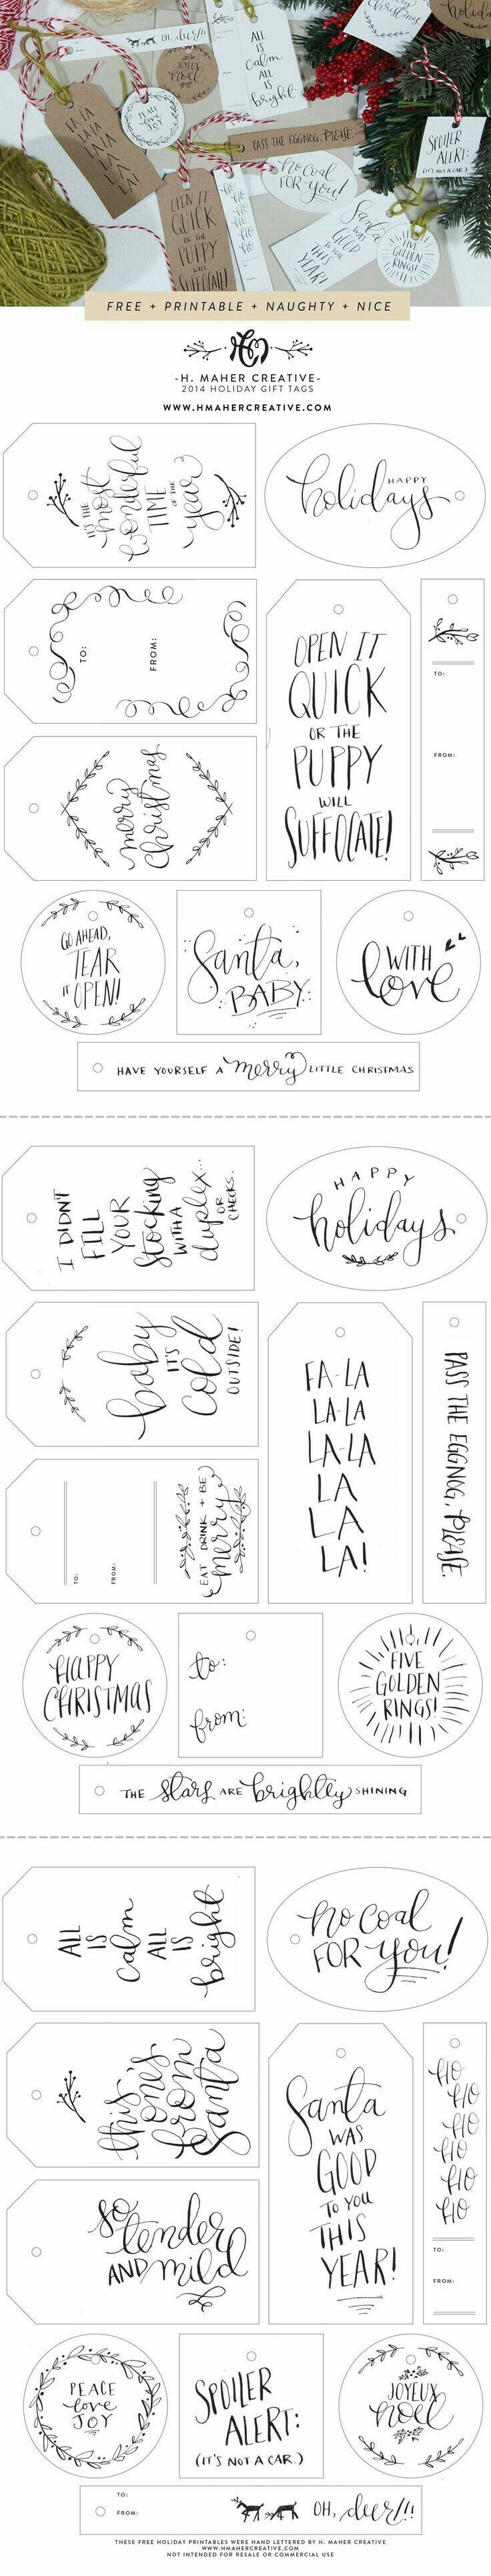 Best 25 homemade gift tags ideas on pinterest diy christmas naughty nice 30 free hand lettered holiday gift tag printables from h maher creative the puppy one is my favorite solutioingenieria Choice Image